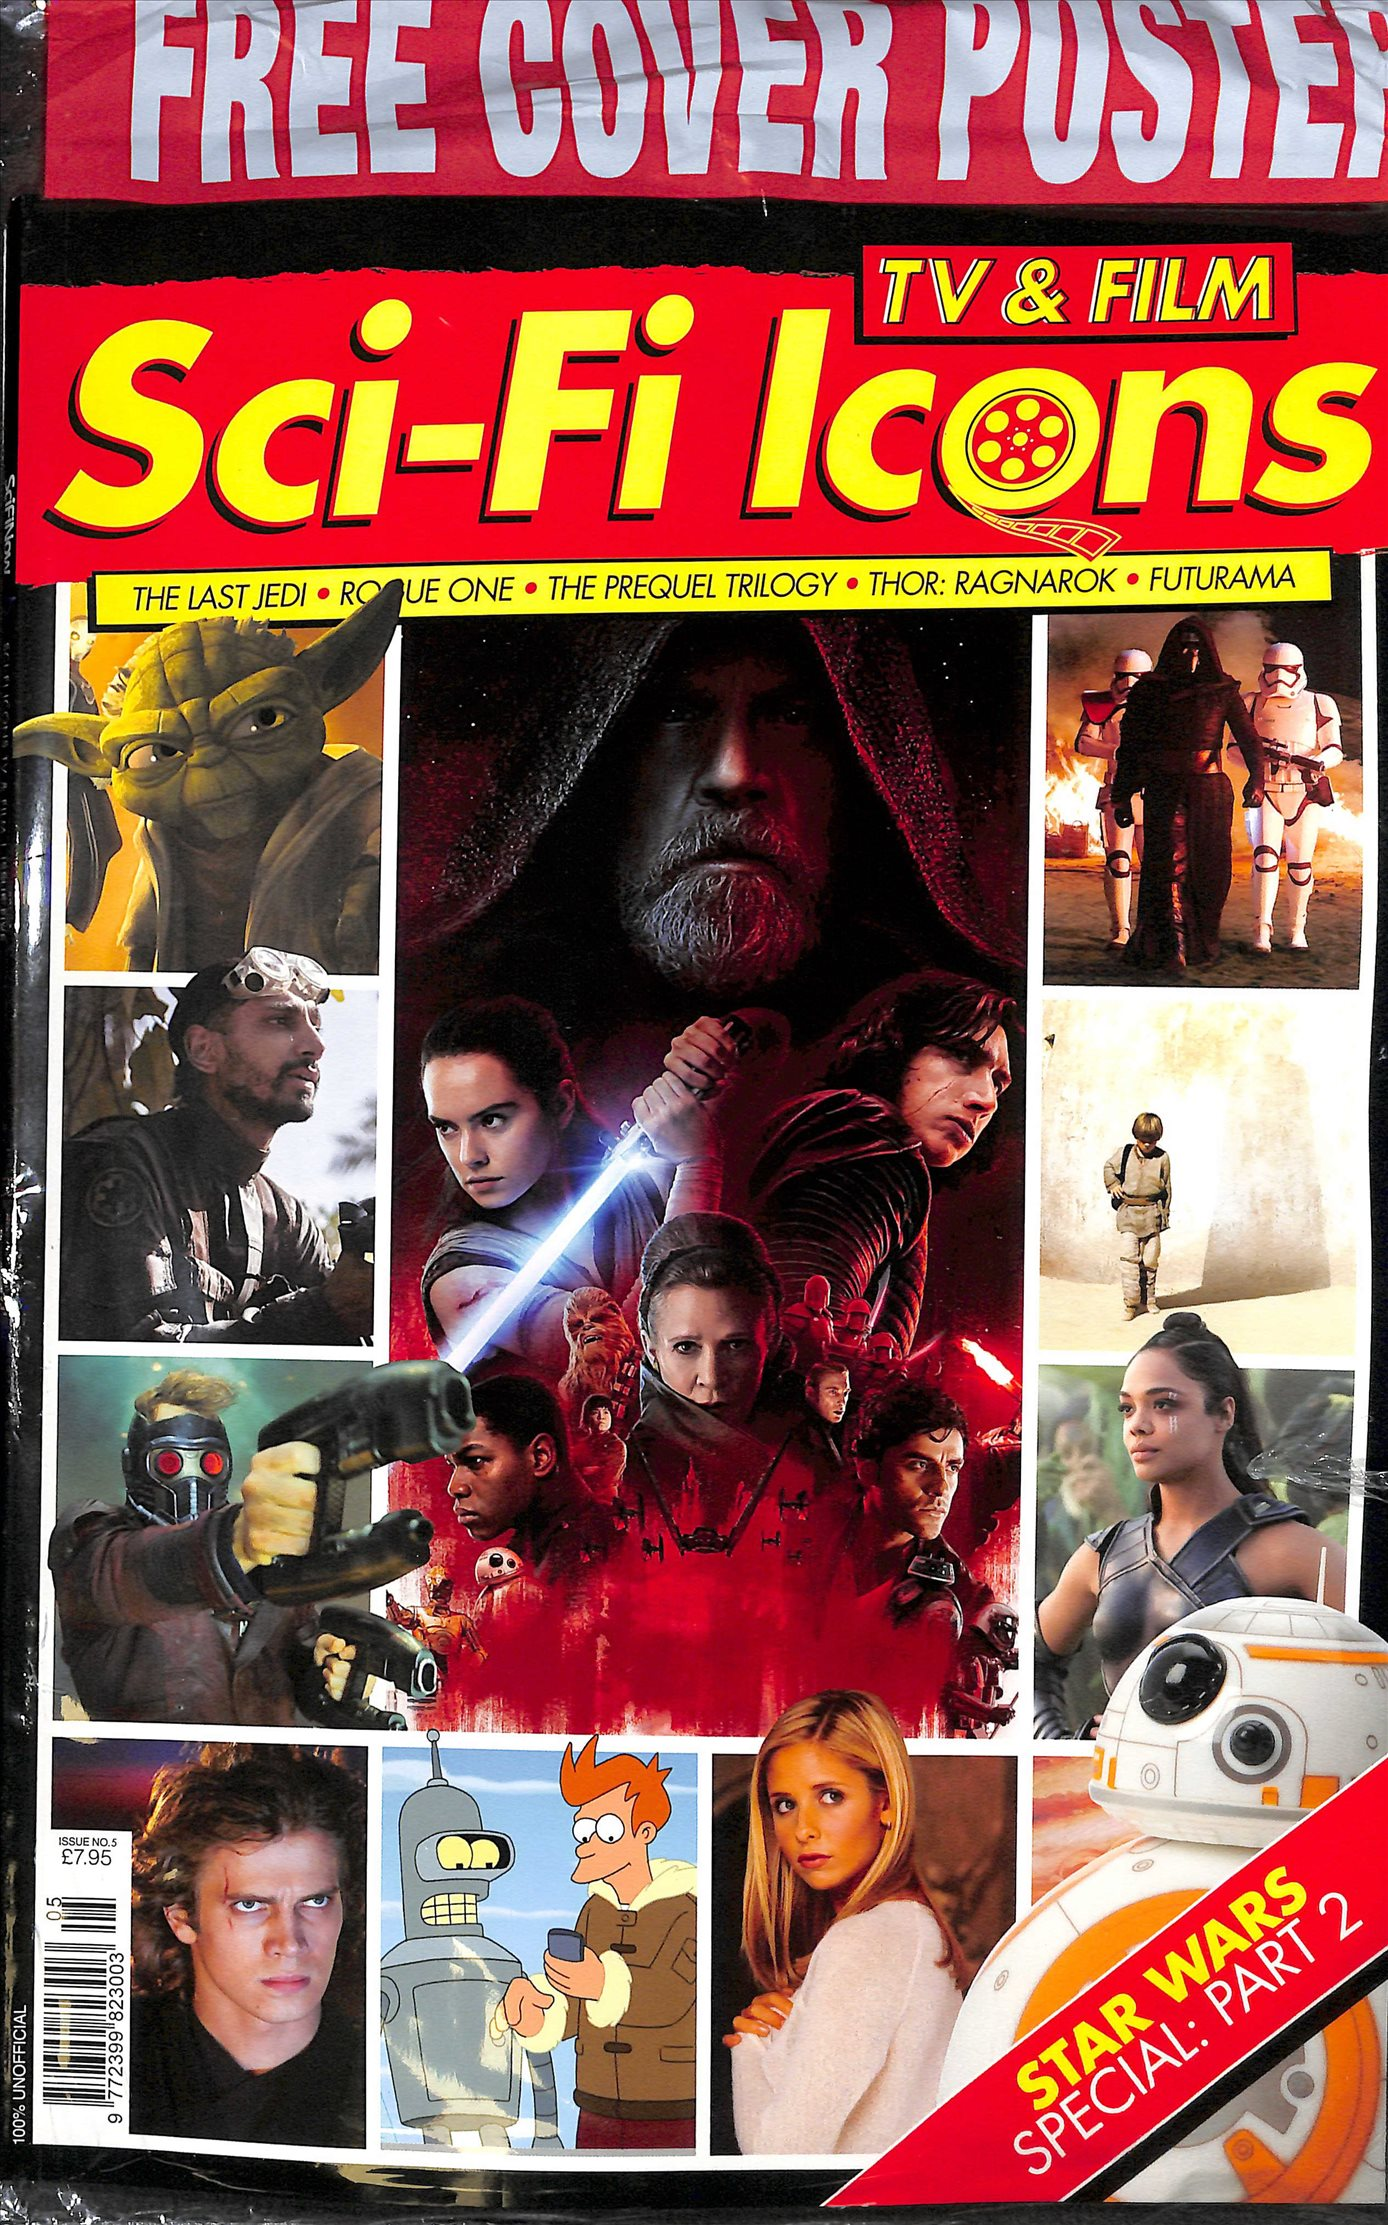 SCI-FI ICONS TV & FILMS